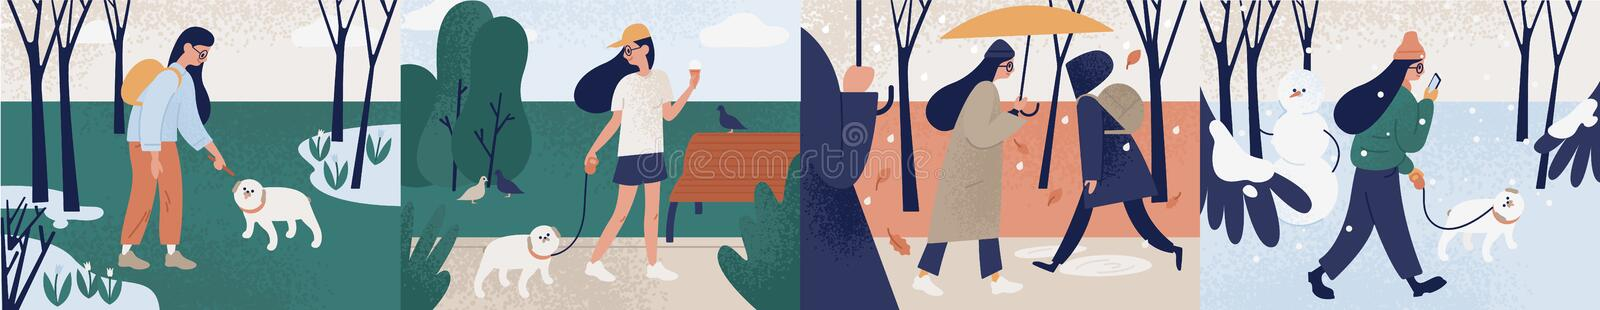 Bundle of girl walking alone or with her dog during different seasons. Set of young woman performing outdoor activities vector illustration